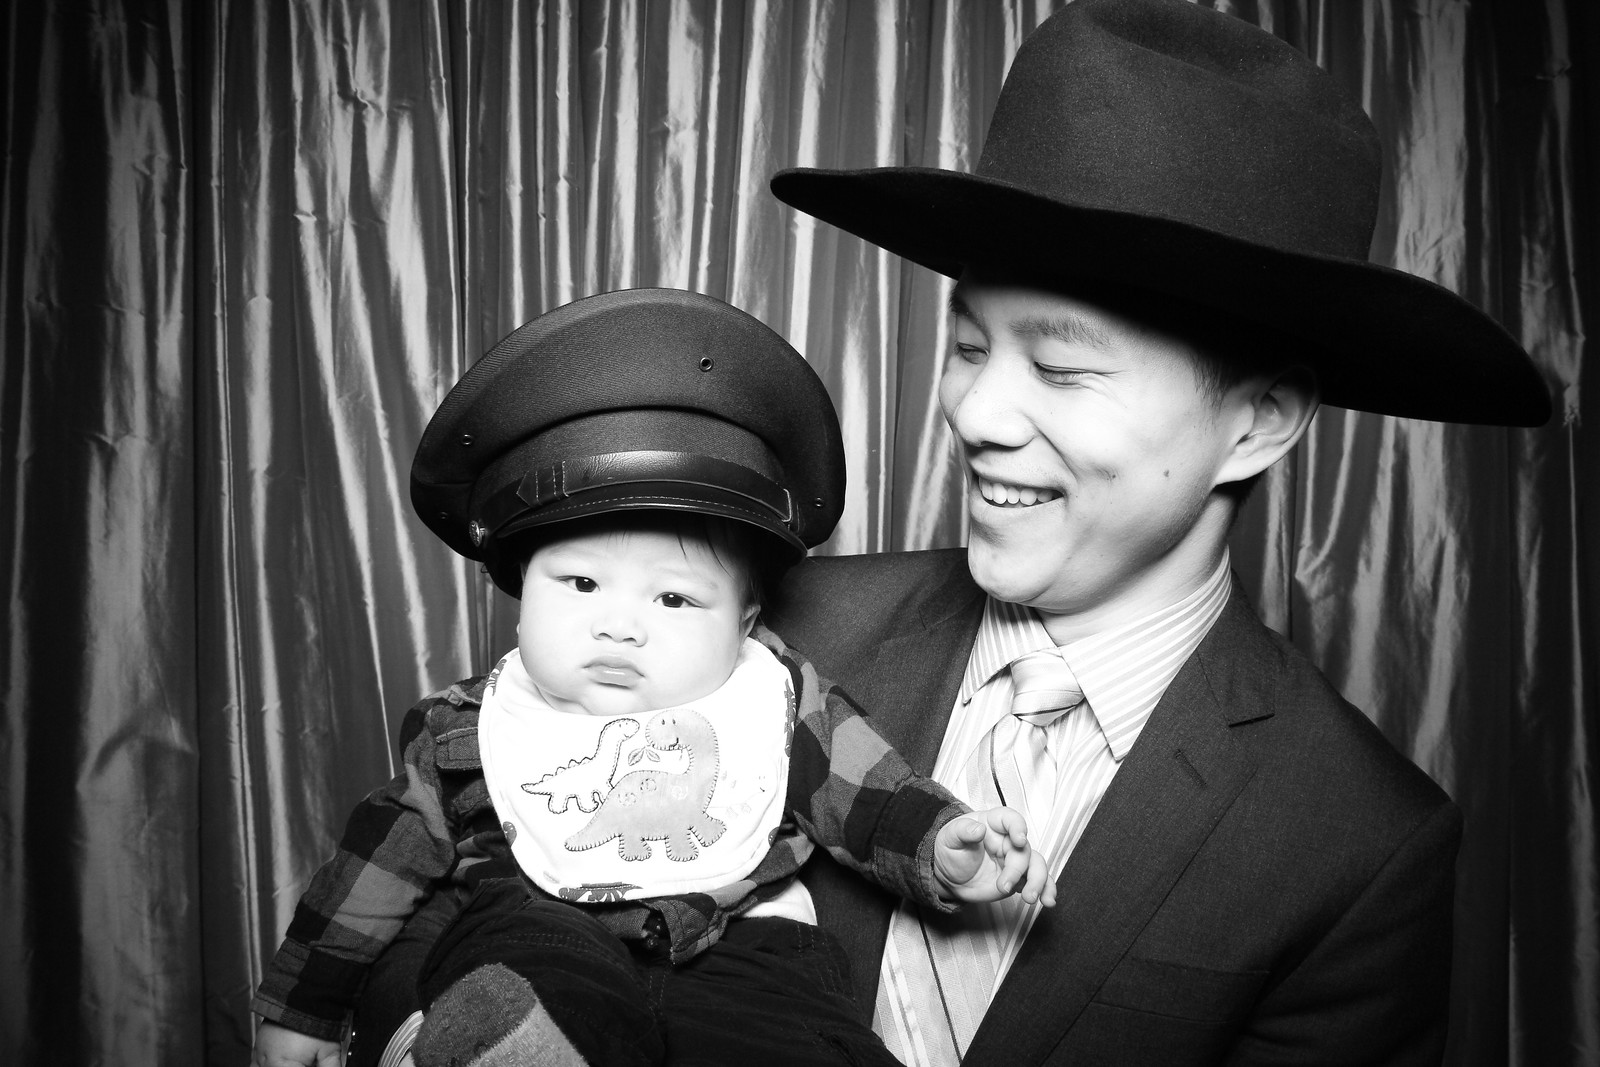 Father son at Sepia! Looking very cute with their props!